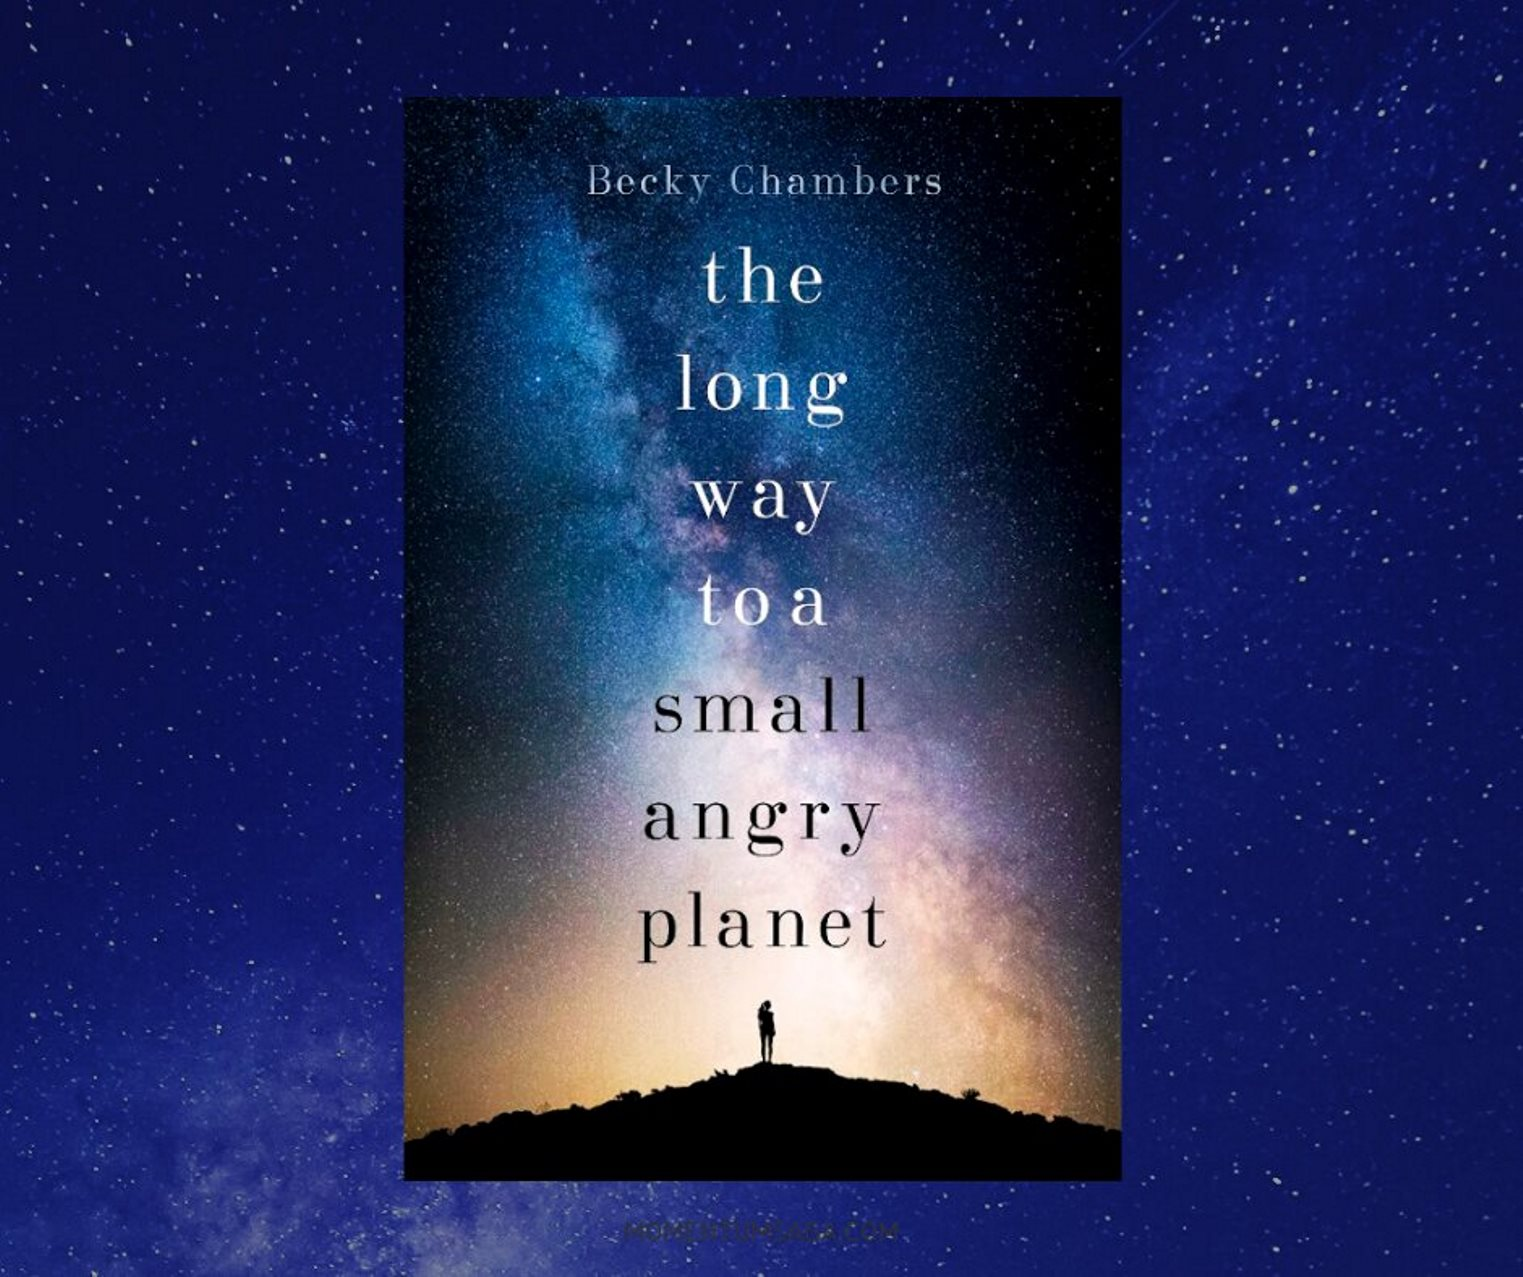 Resenha: The Long Way To a Small, Angry Planet, de Becky Chambers